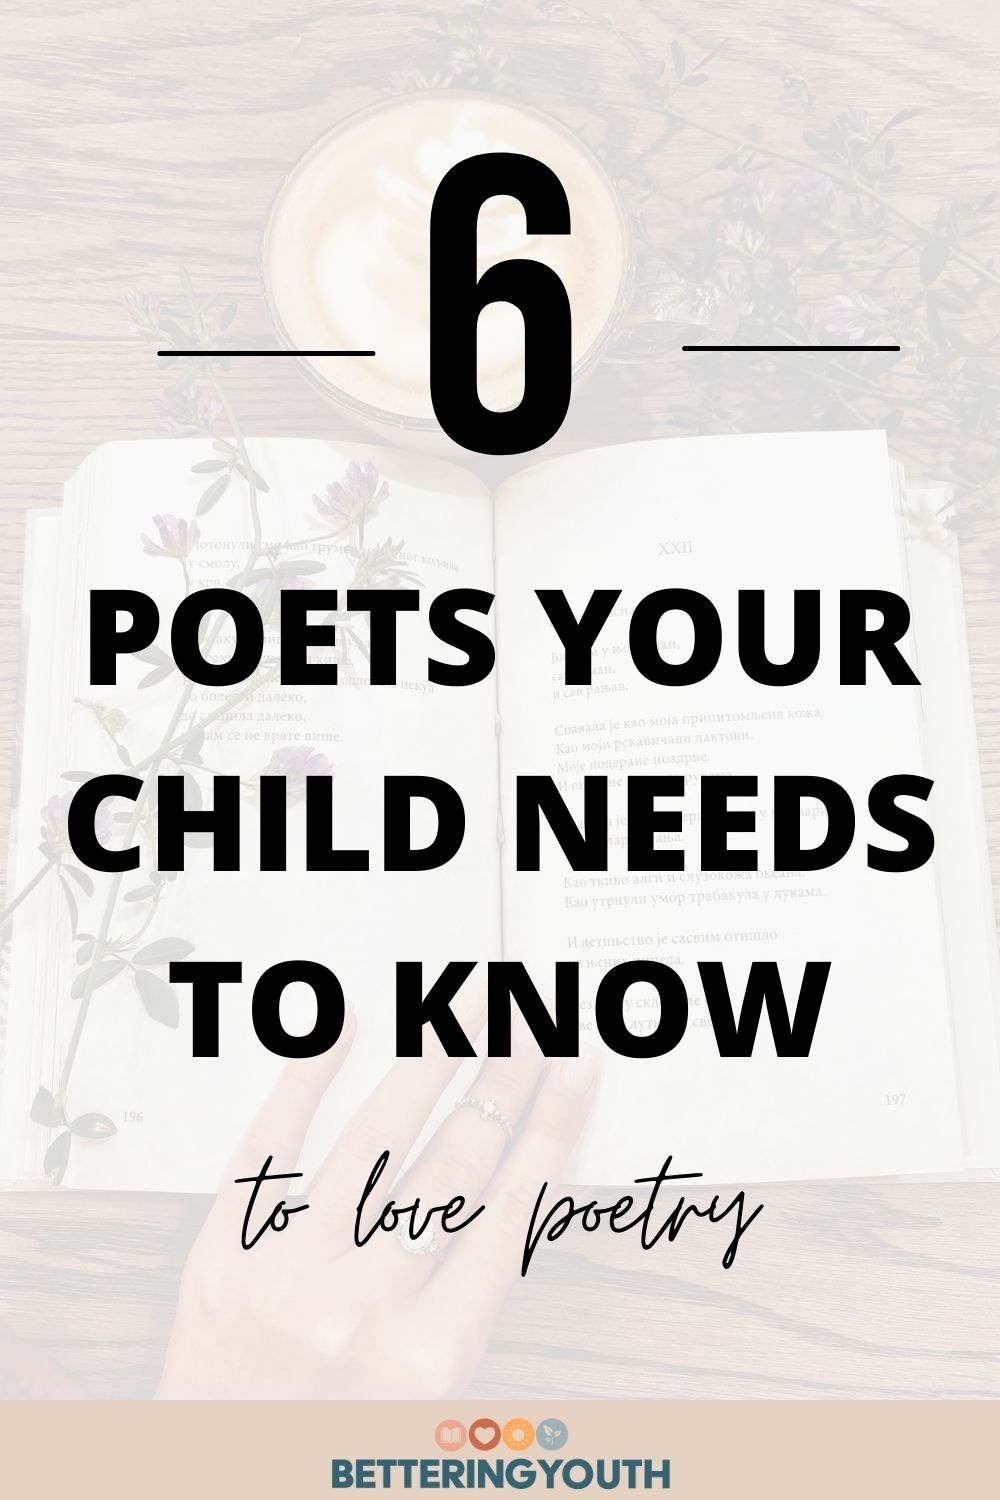 How To Introduce Poetry: Build a Love of Poetry